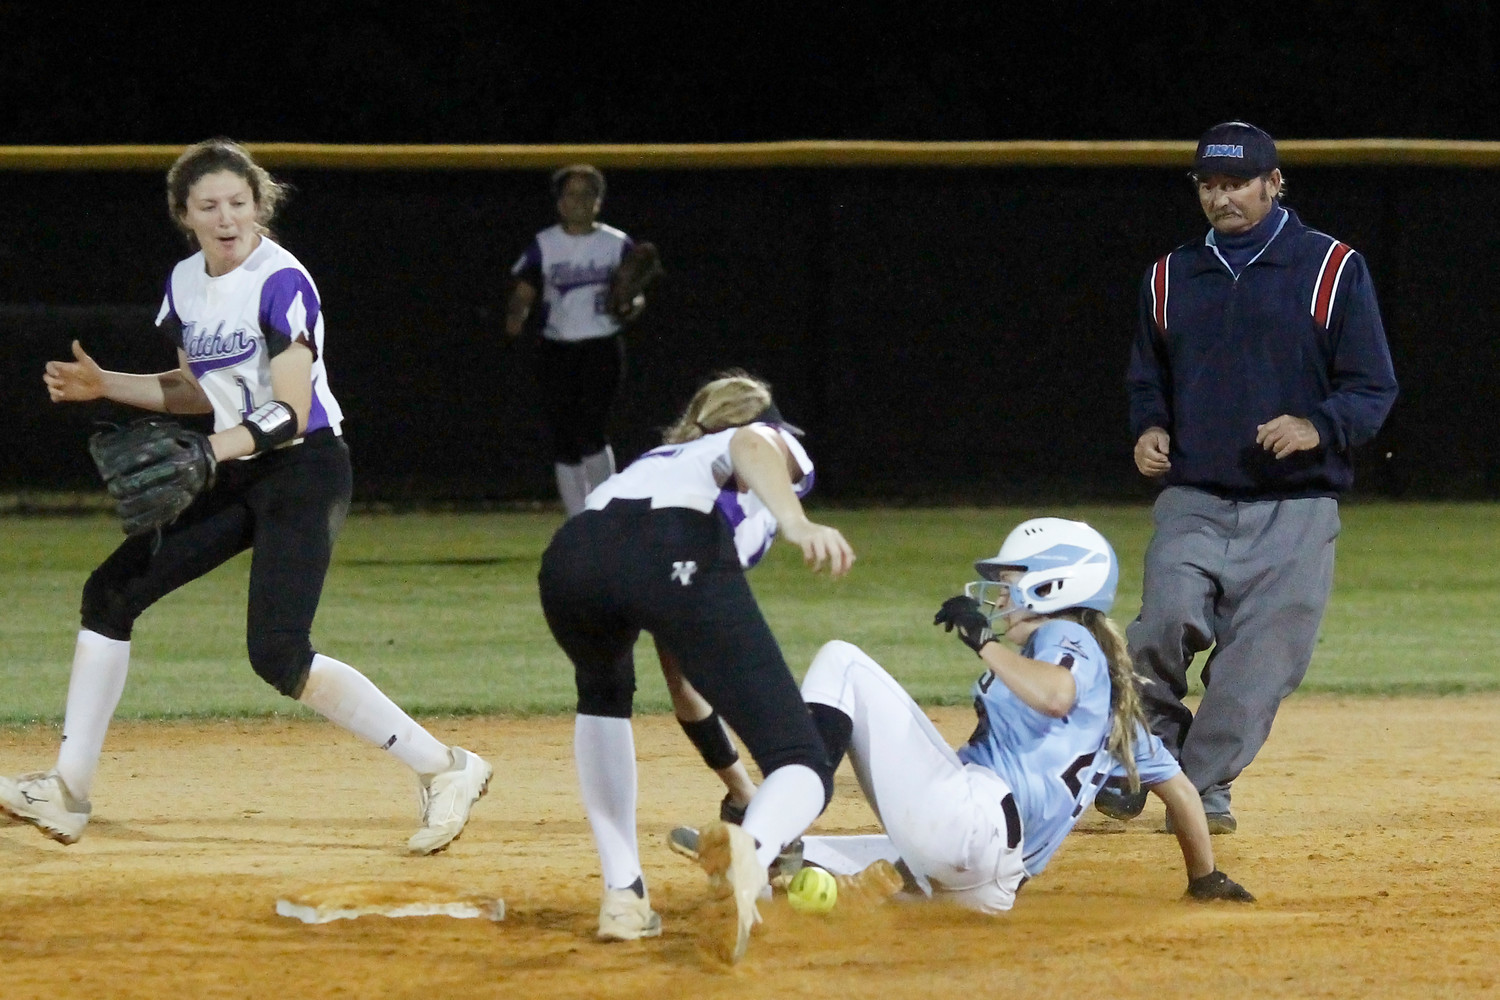 Kiley Hennesey of Ponte Vedra slides safely into second on a steal.